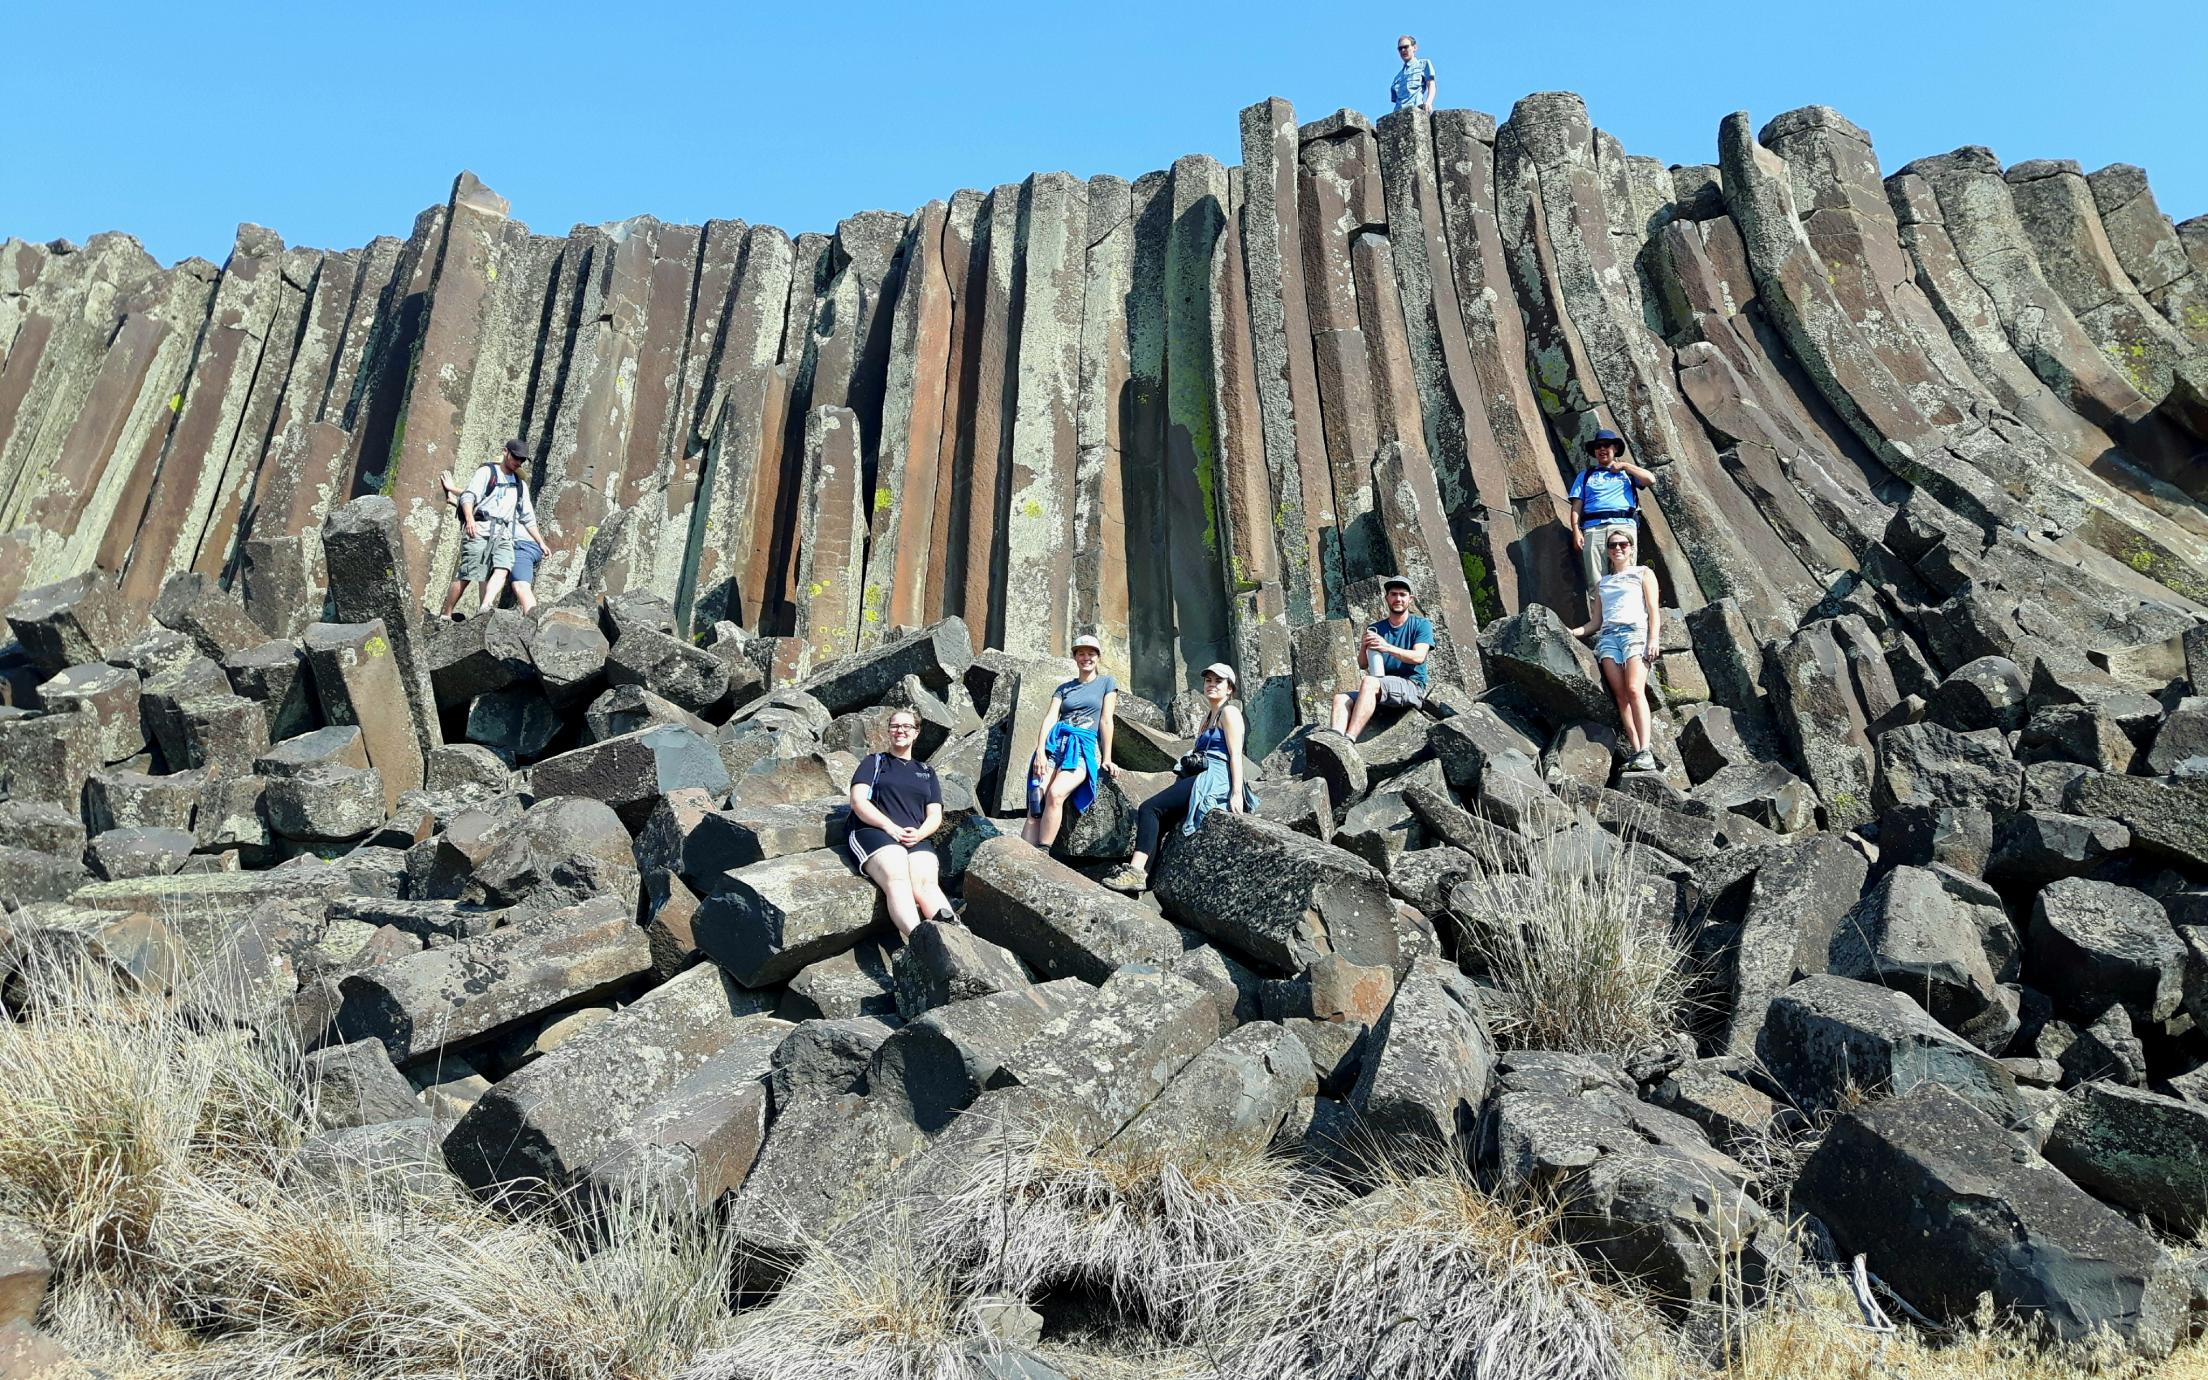 medium resolution of Earth Science K-12 Education Resources   Earth Science   Vancouver Island  University   Canada